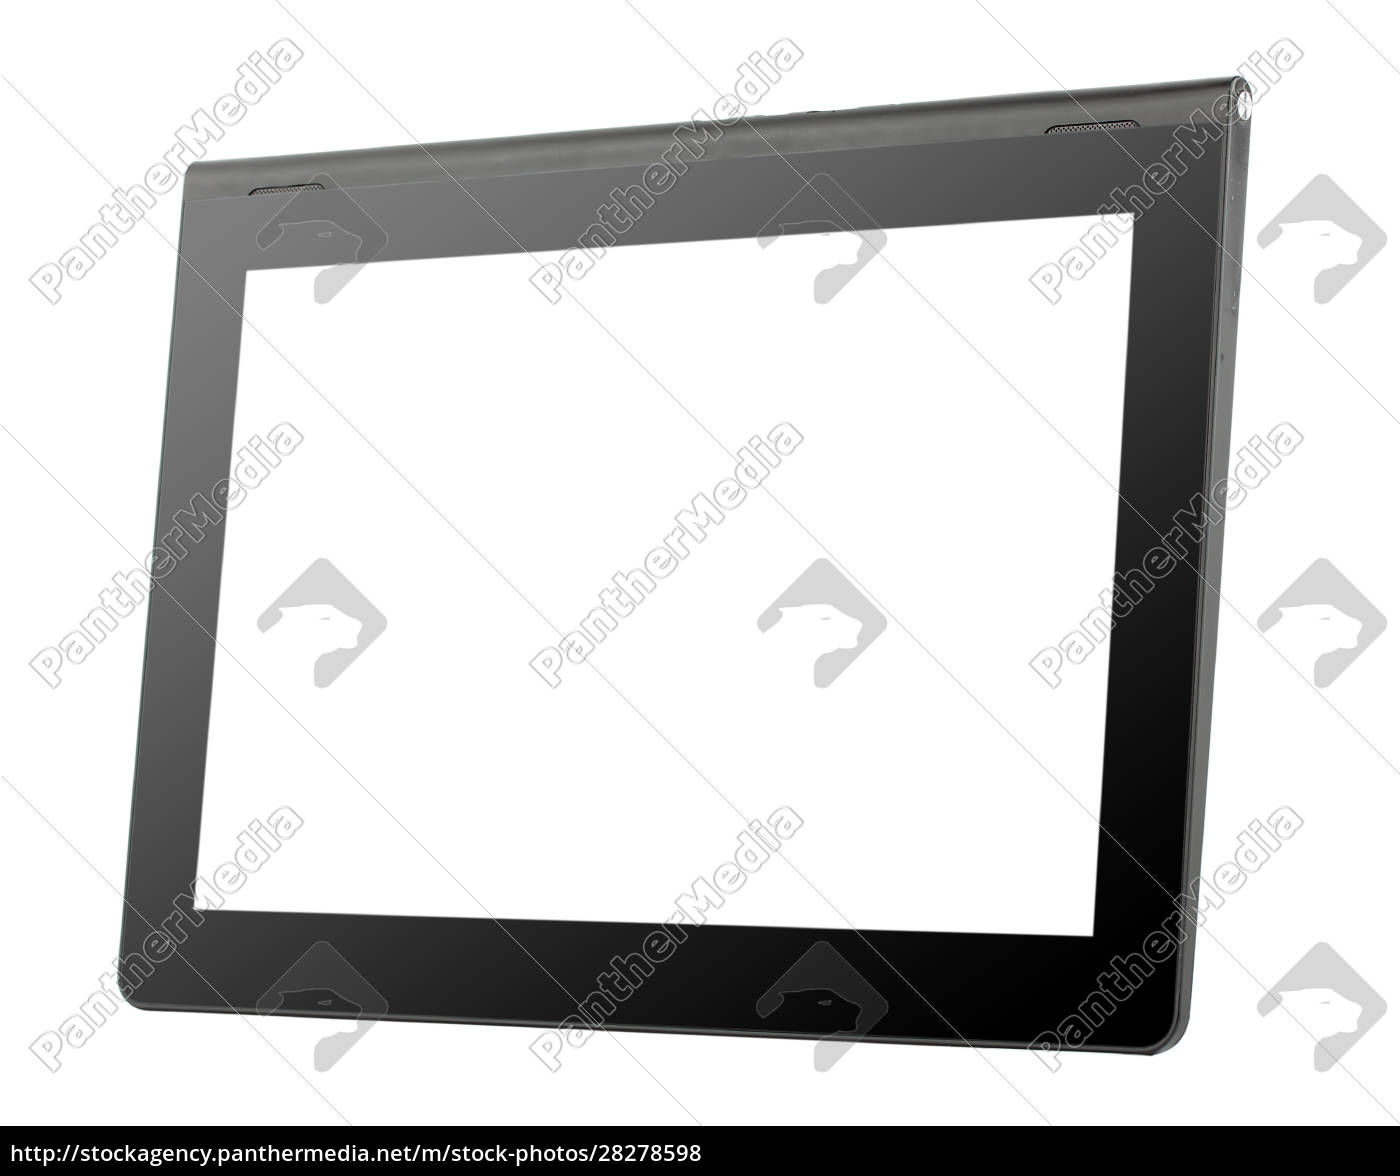 black, tablet, computer - 28278598